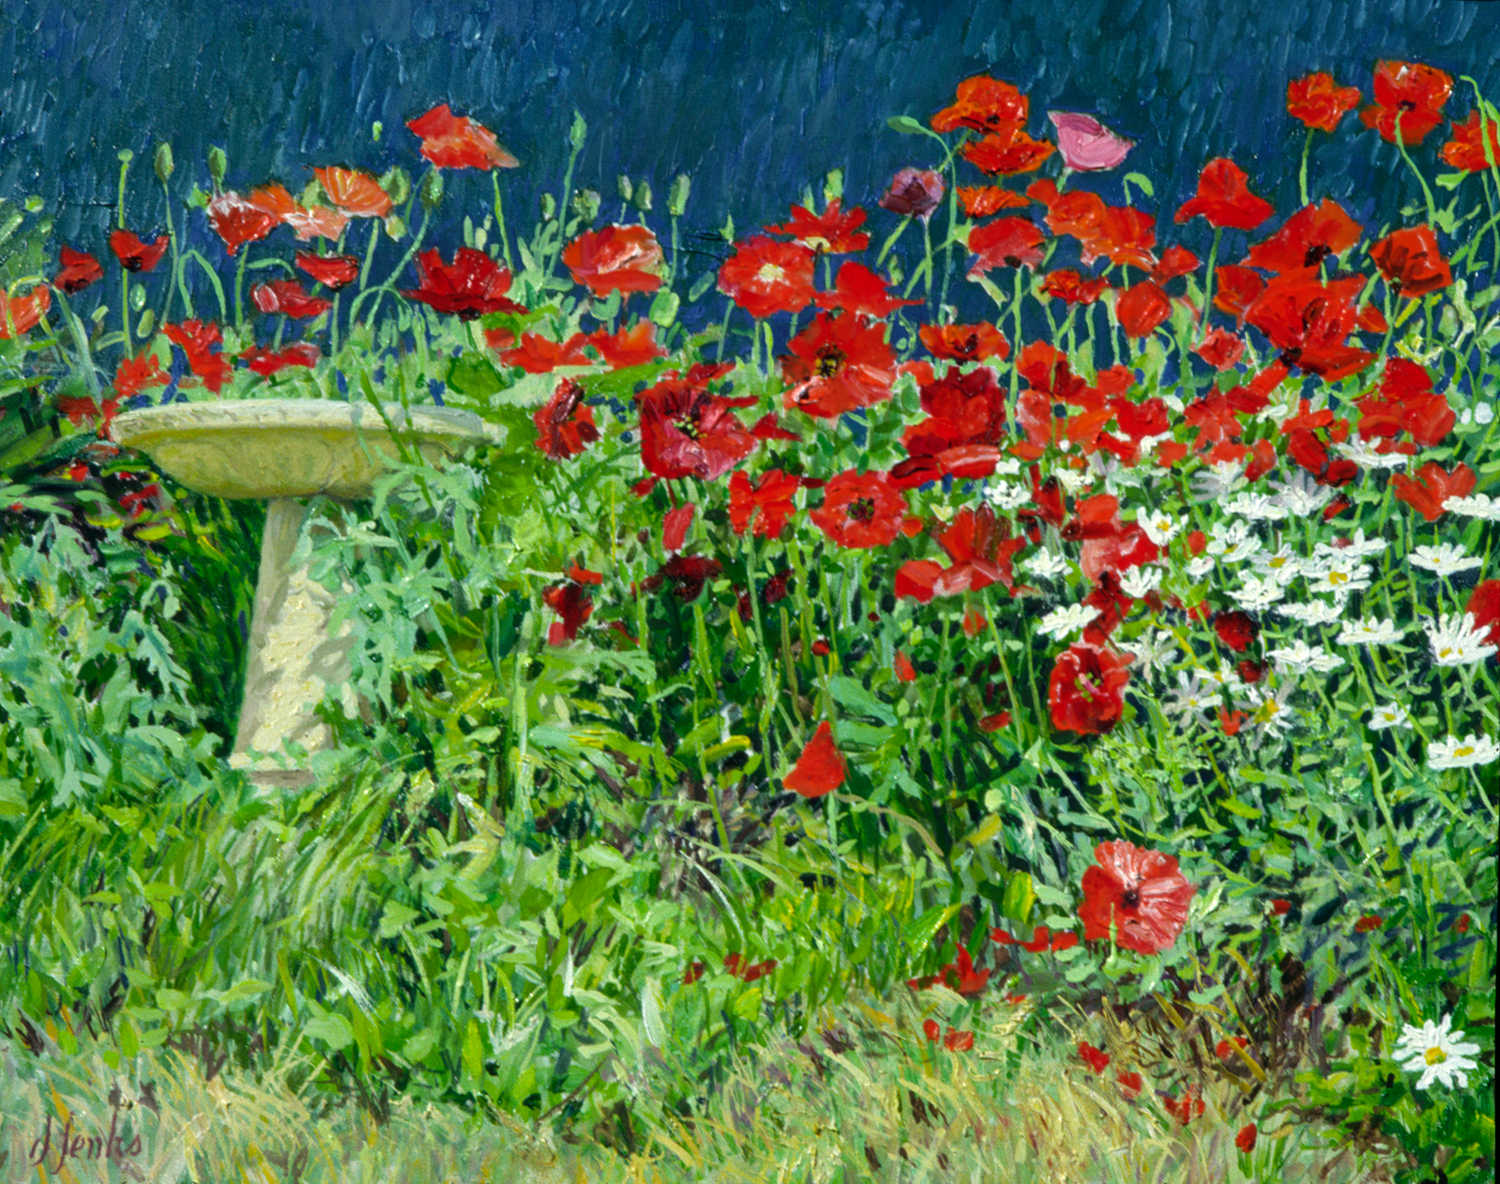 Birdbath in the Poppies